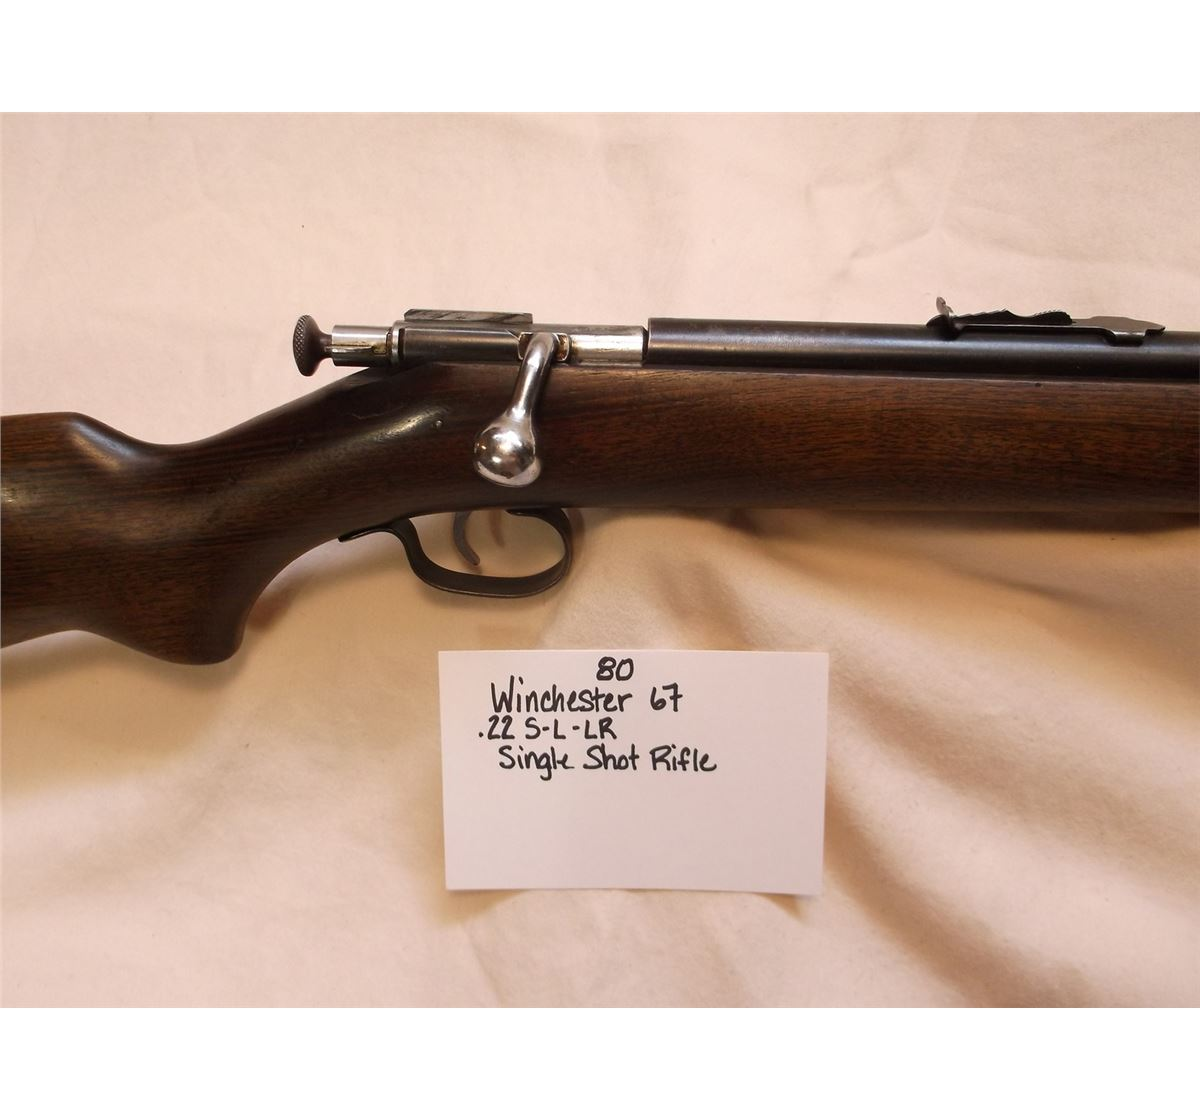 Winchester gun hookup by serial number